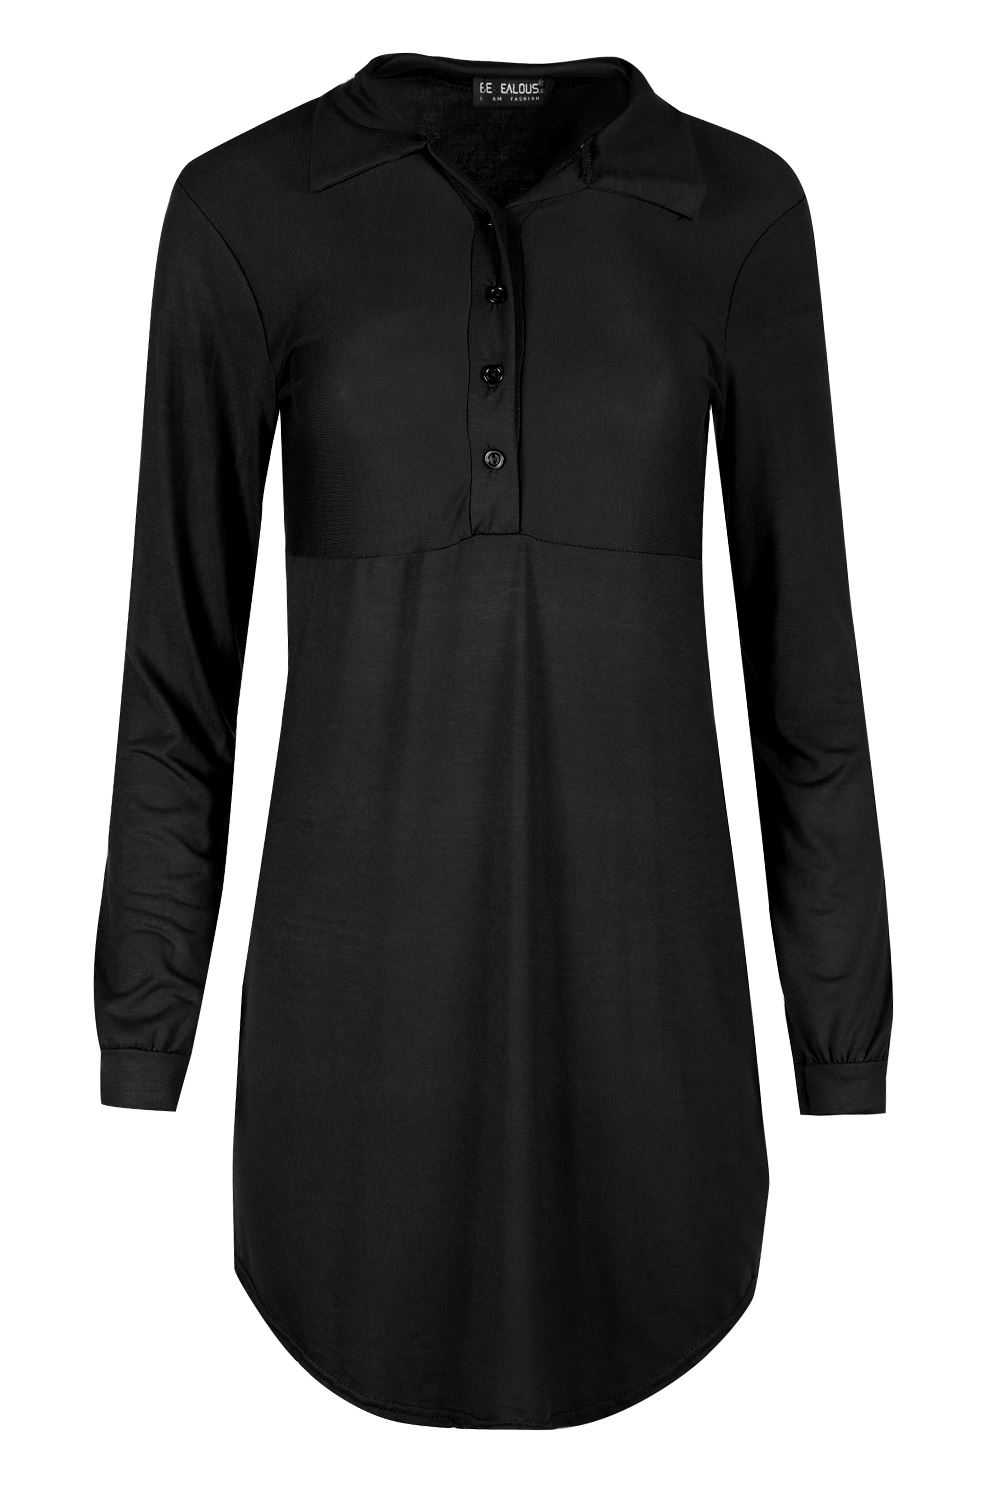 Black t shirt dress ebay - Womens Ladies Long Sleeve Collar Curved Hem Front